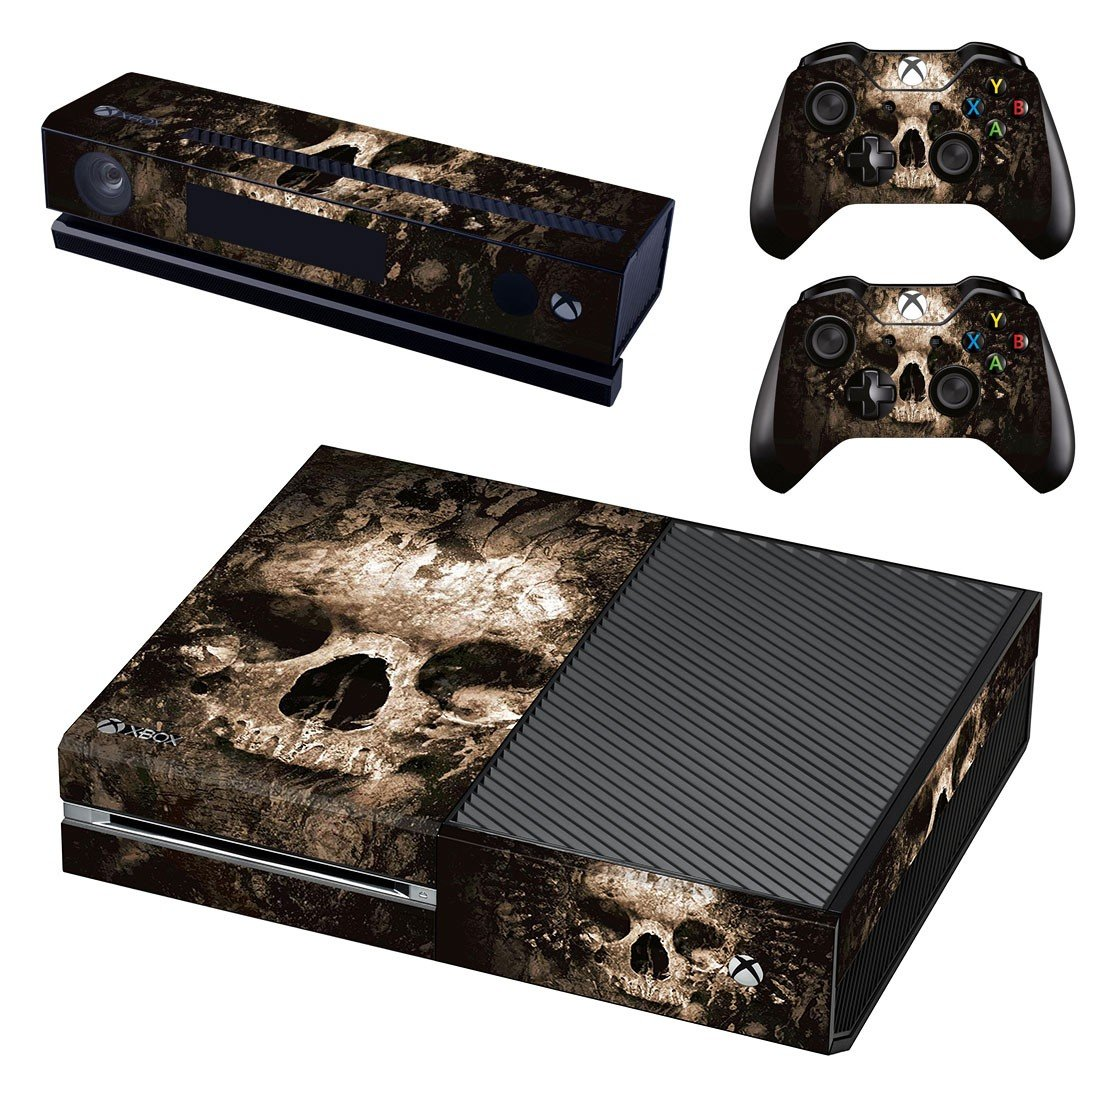 Burned Skull skin decal for Xbox one console and controllers